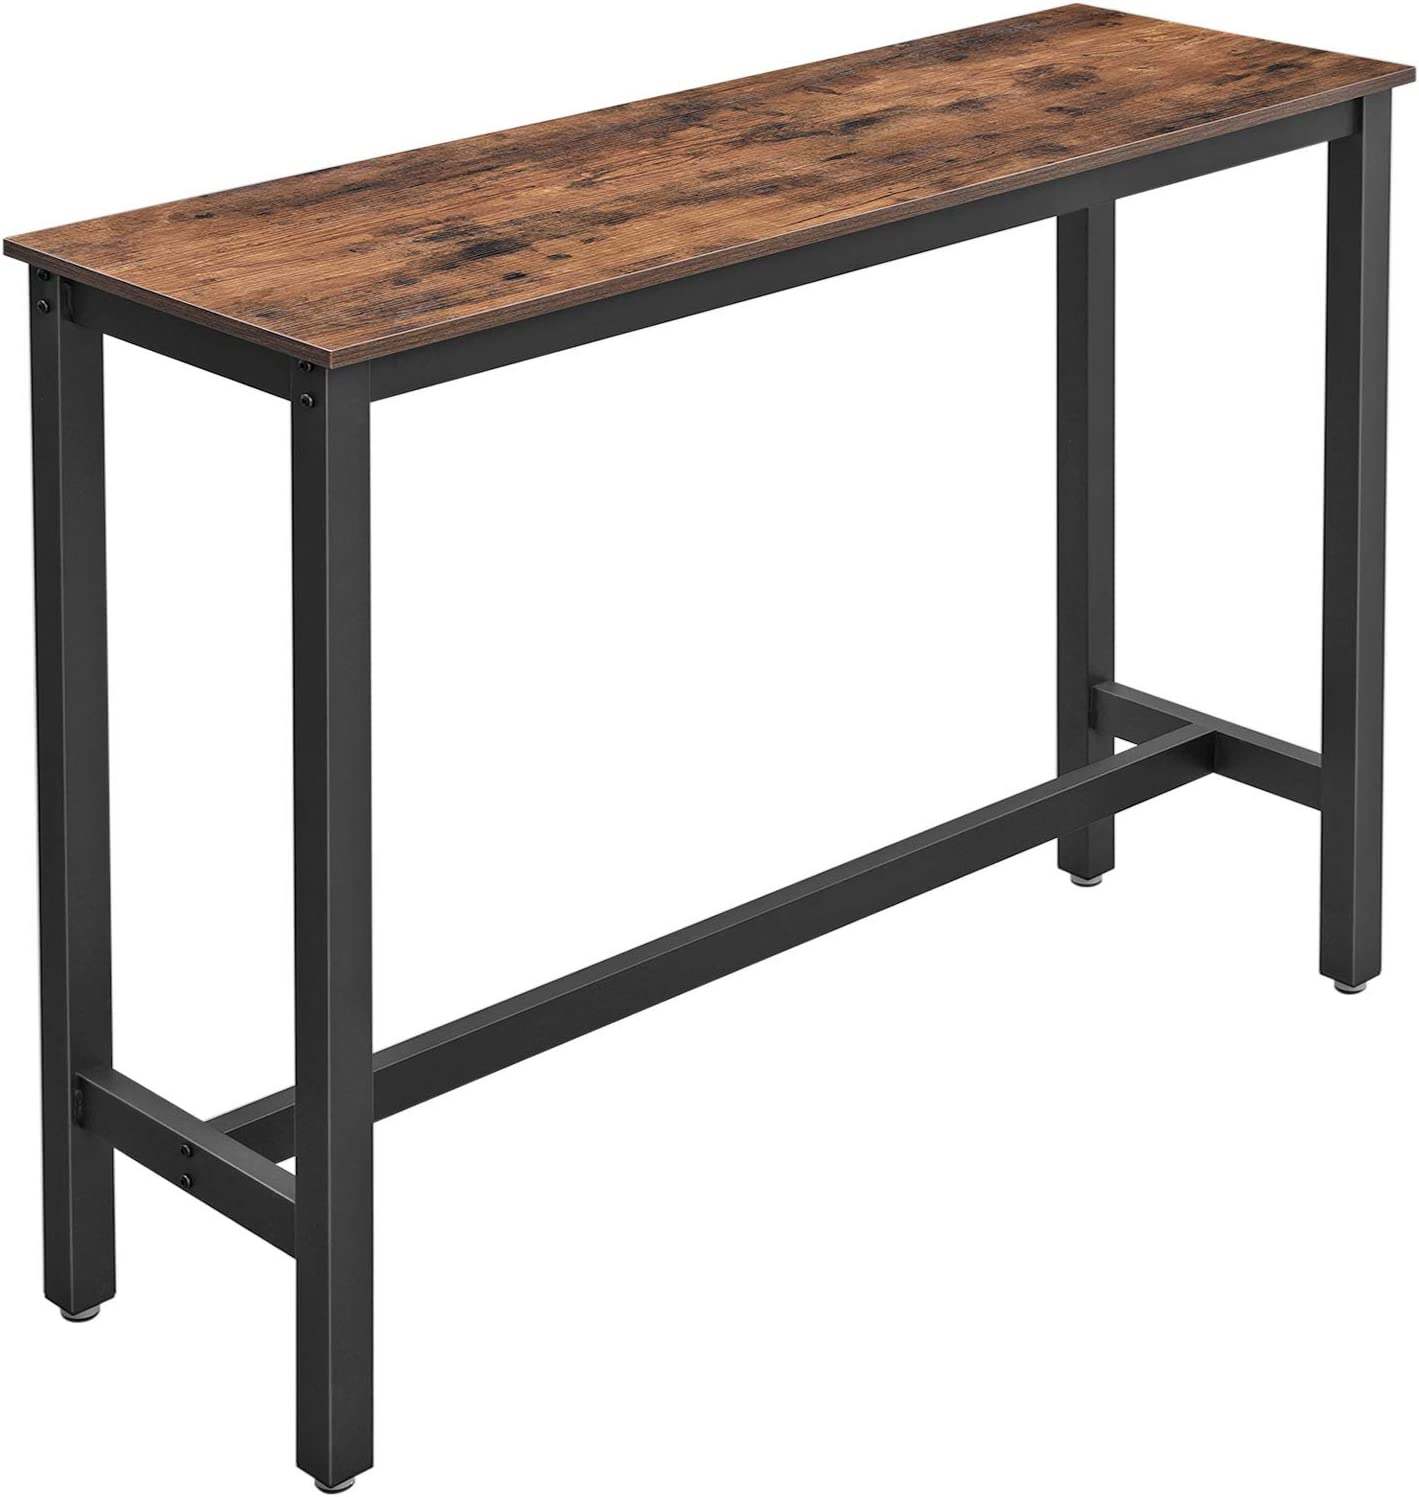 Vasagle LBT9X Narrow Bar Table, Kitchen Table, Kitchen Counter,  Rectangular High Table, Sturdy Metal Frame, 90 x 9 x 9 cm, Easy  Assembly, ...